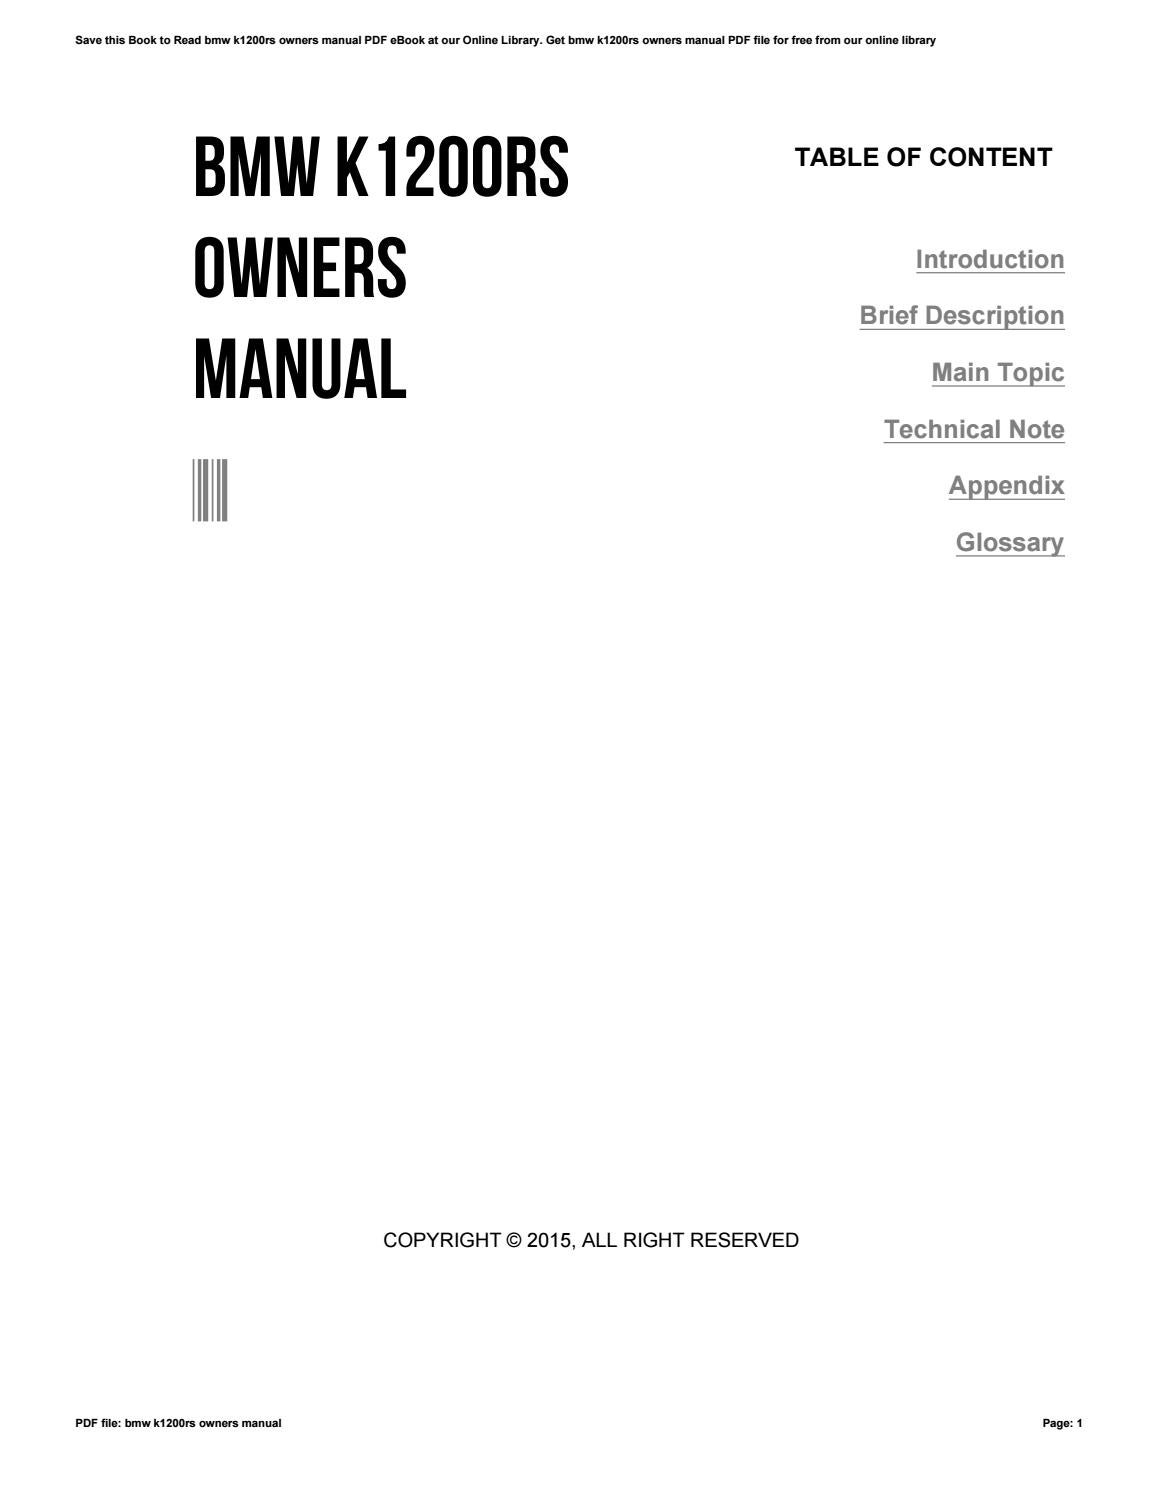 Bmw k1200rs owners manual by CherylCorey3913 - issuu